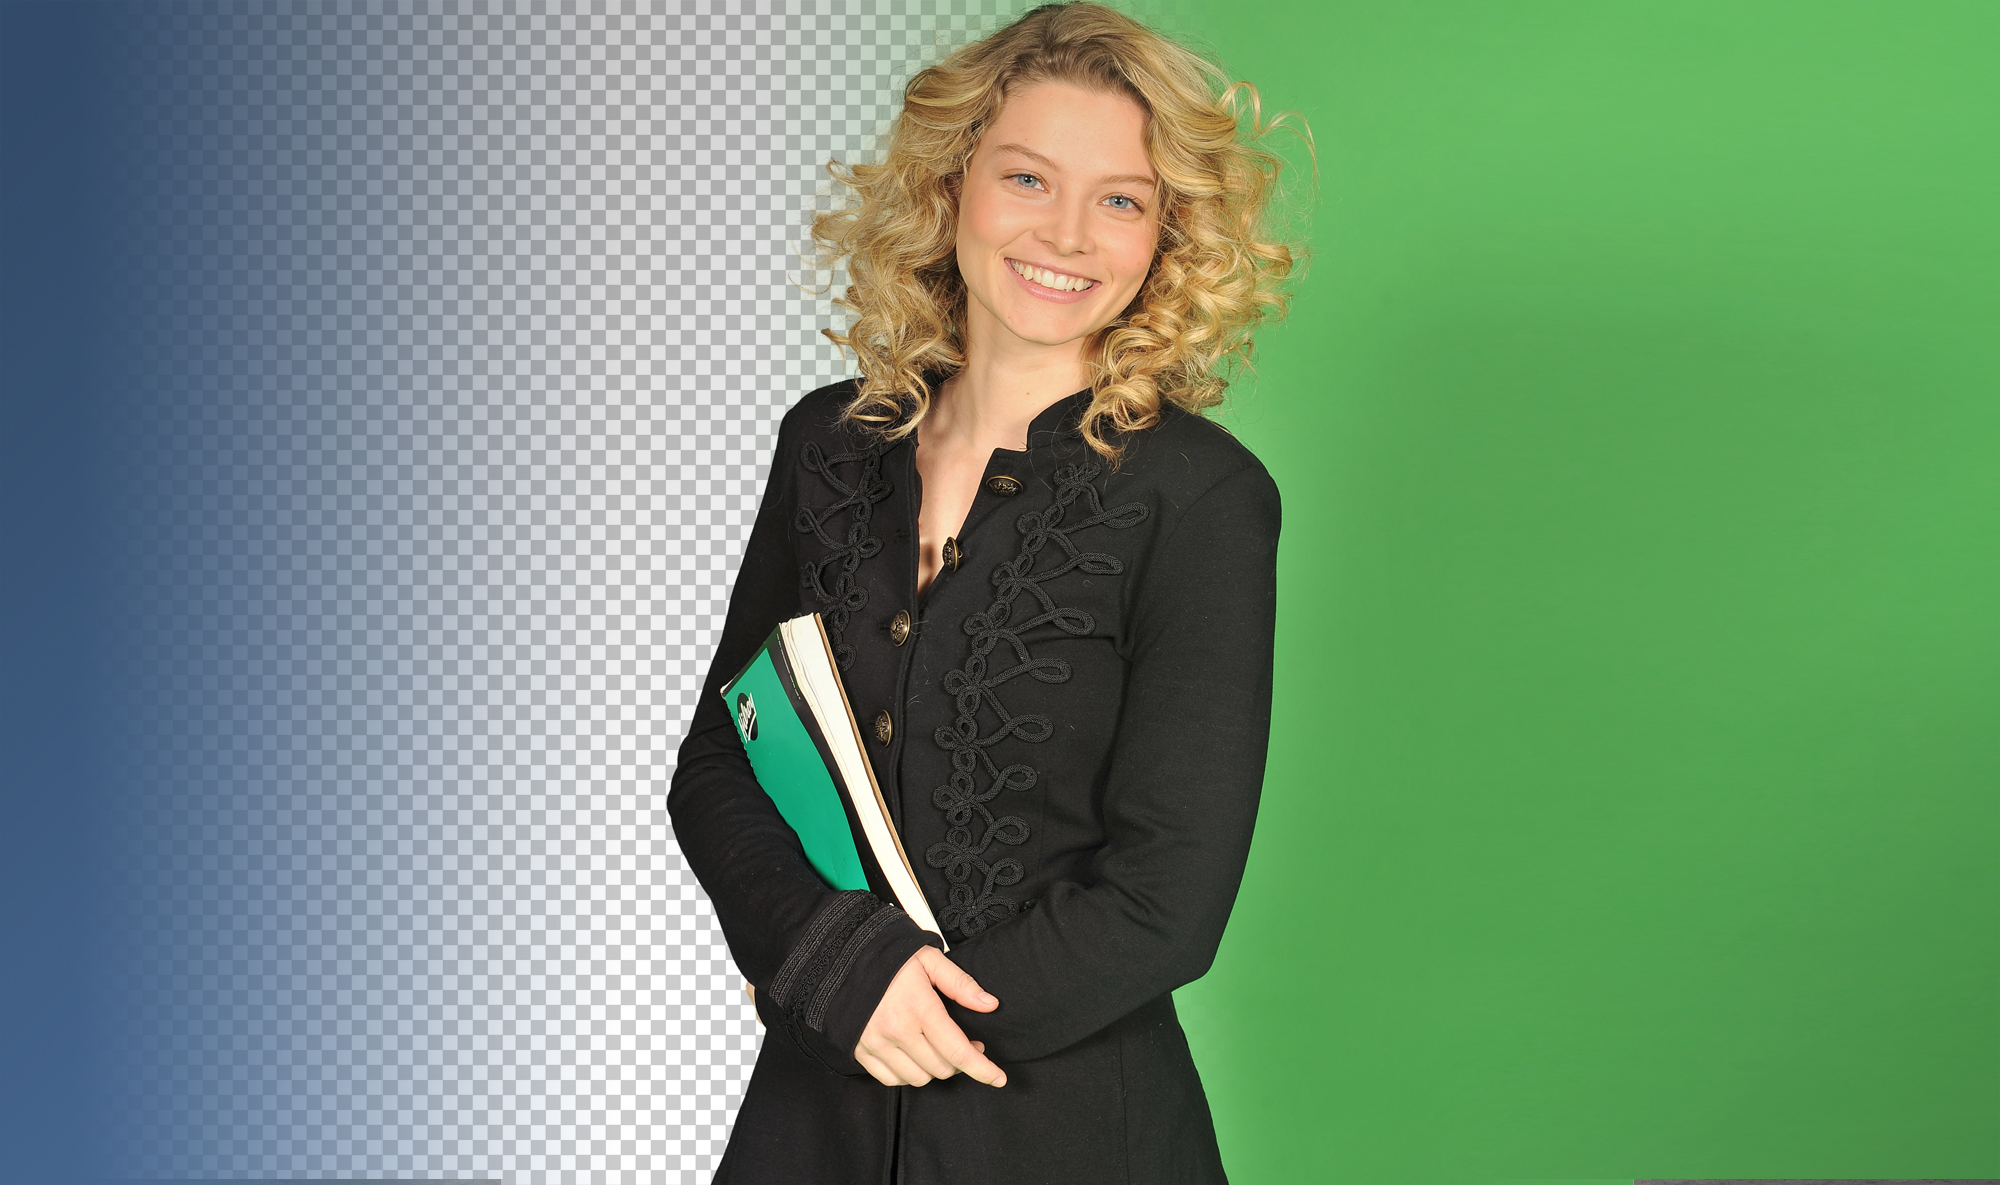 Model with blue and green in the background for chroma keying